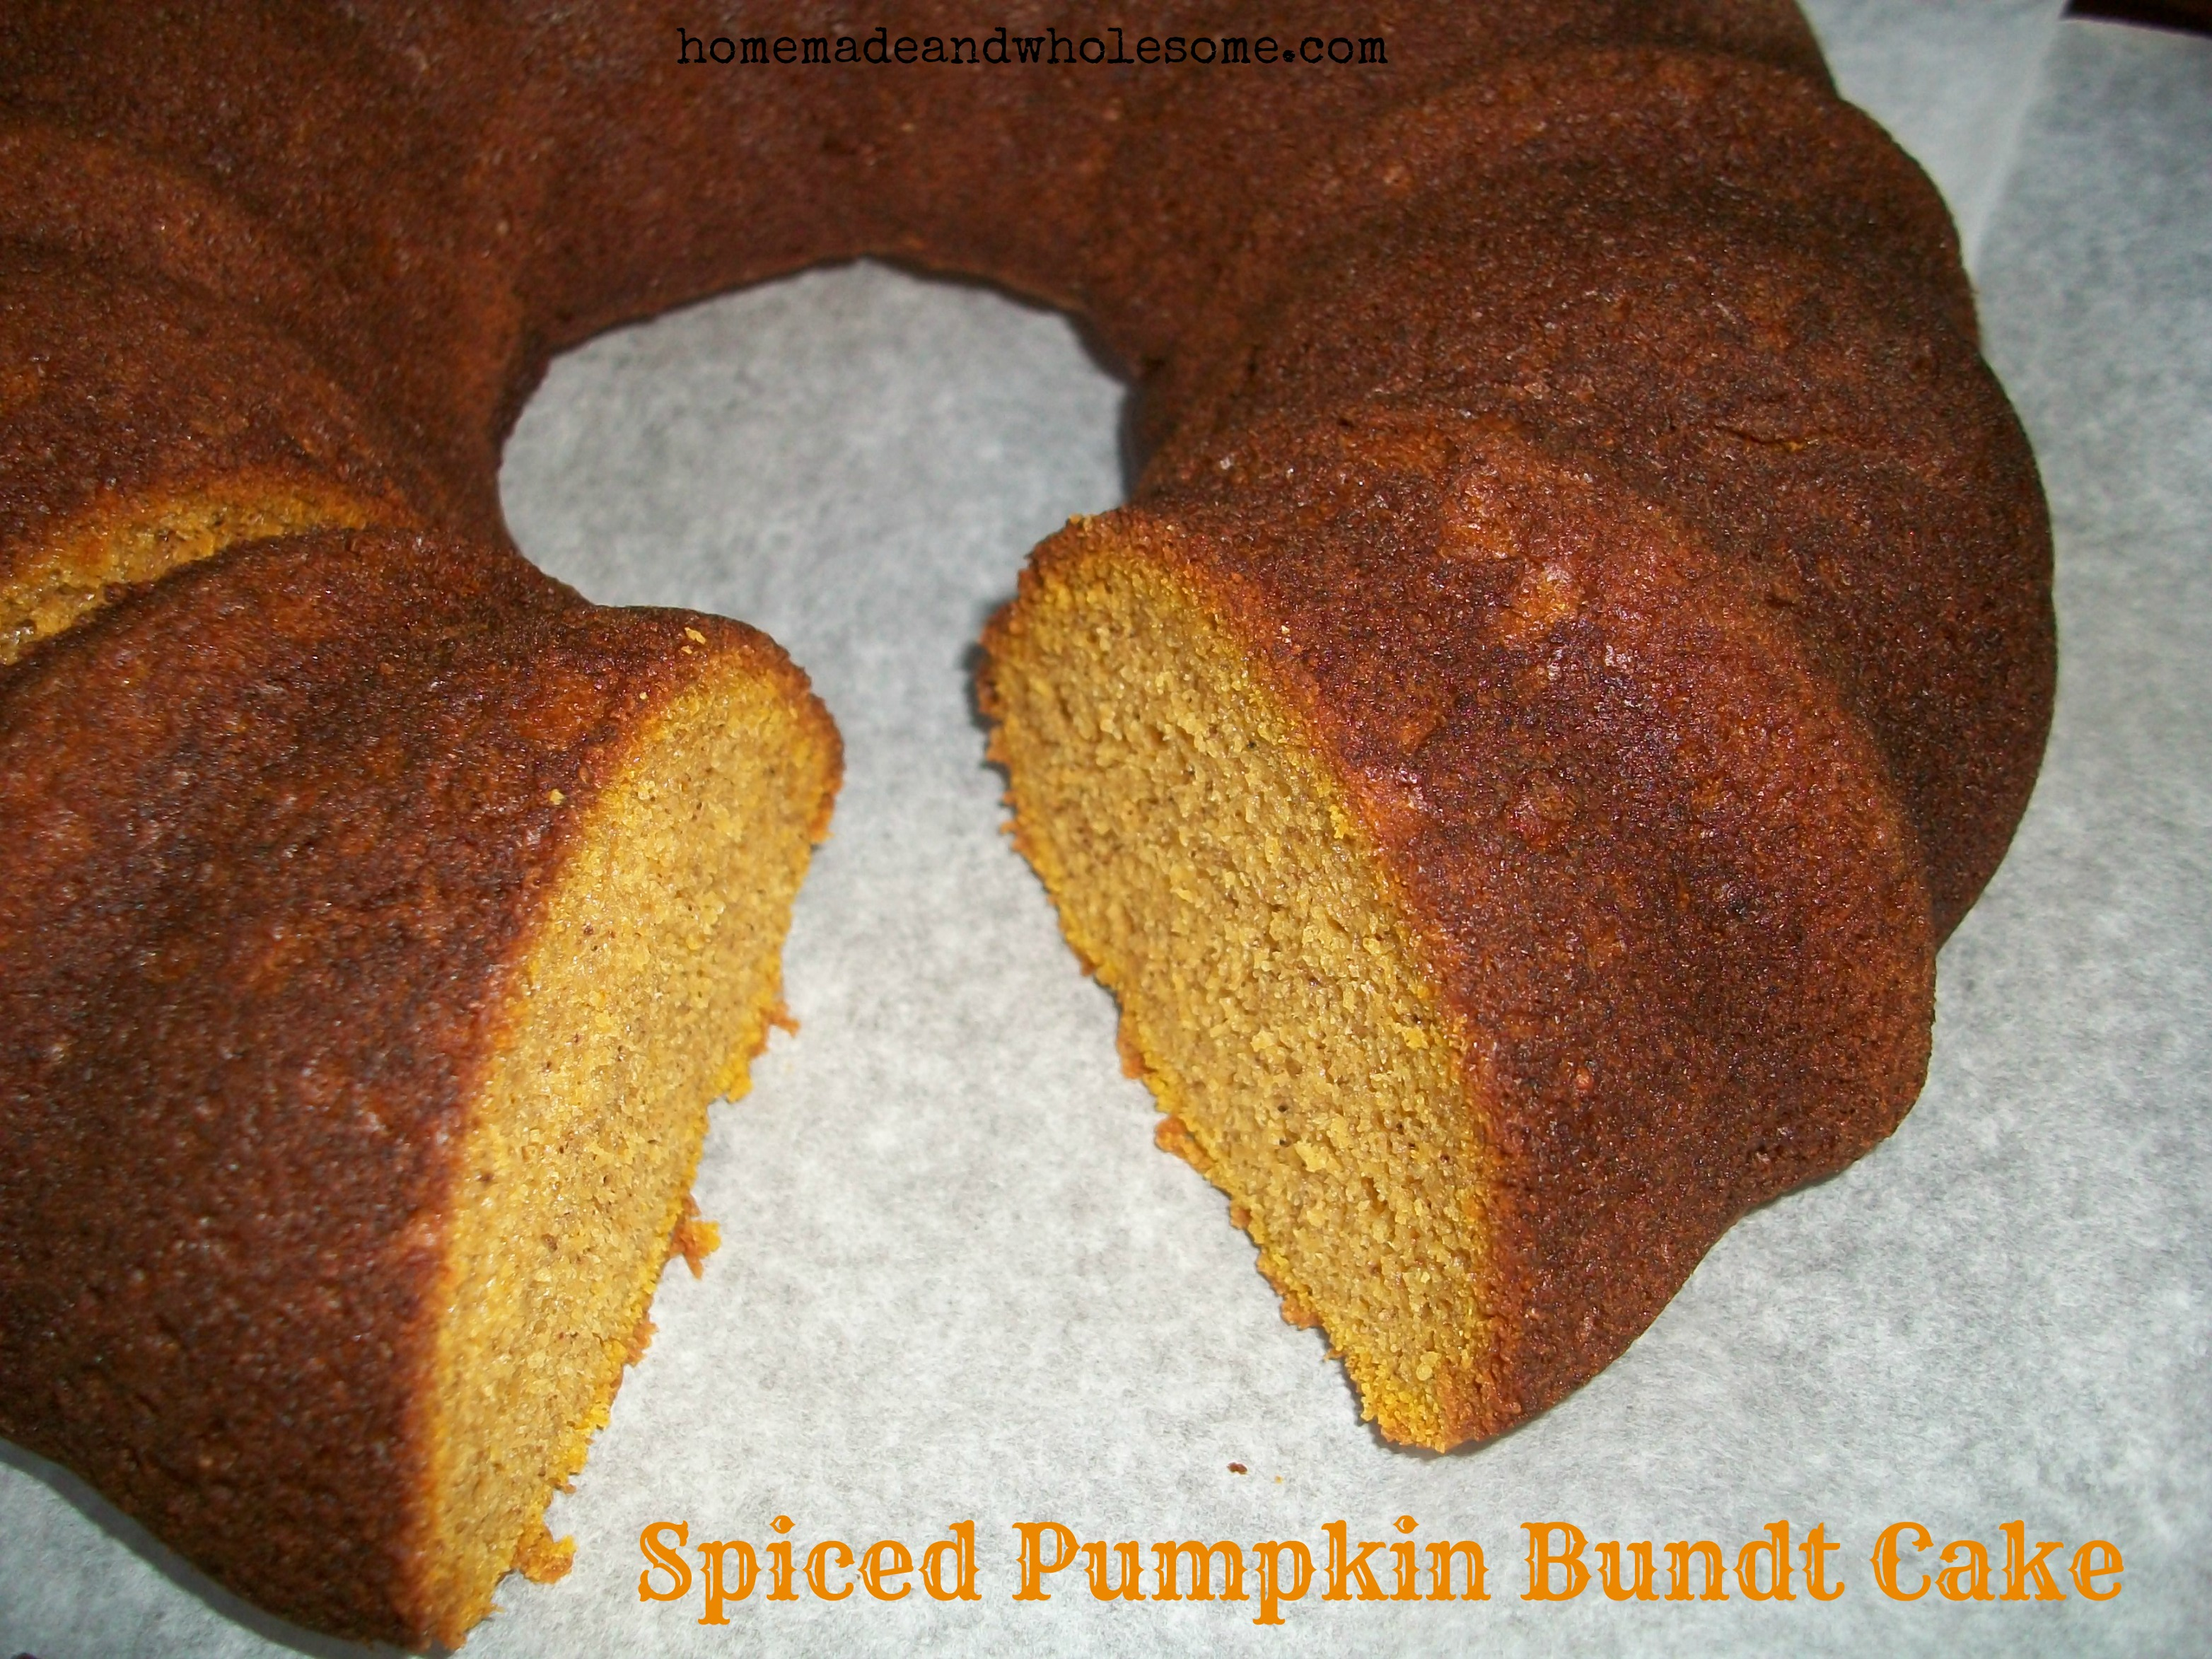 Spiced Pumpkin Bundt Cake | Homemade and Wholesome